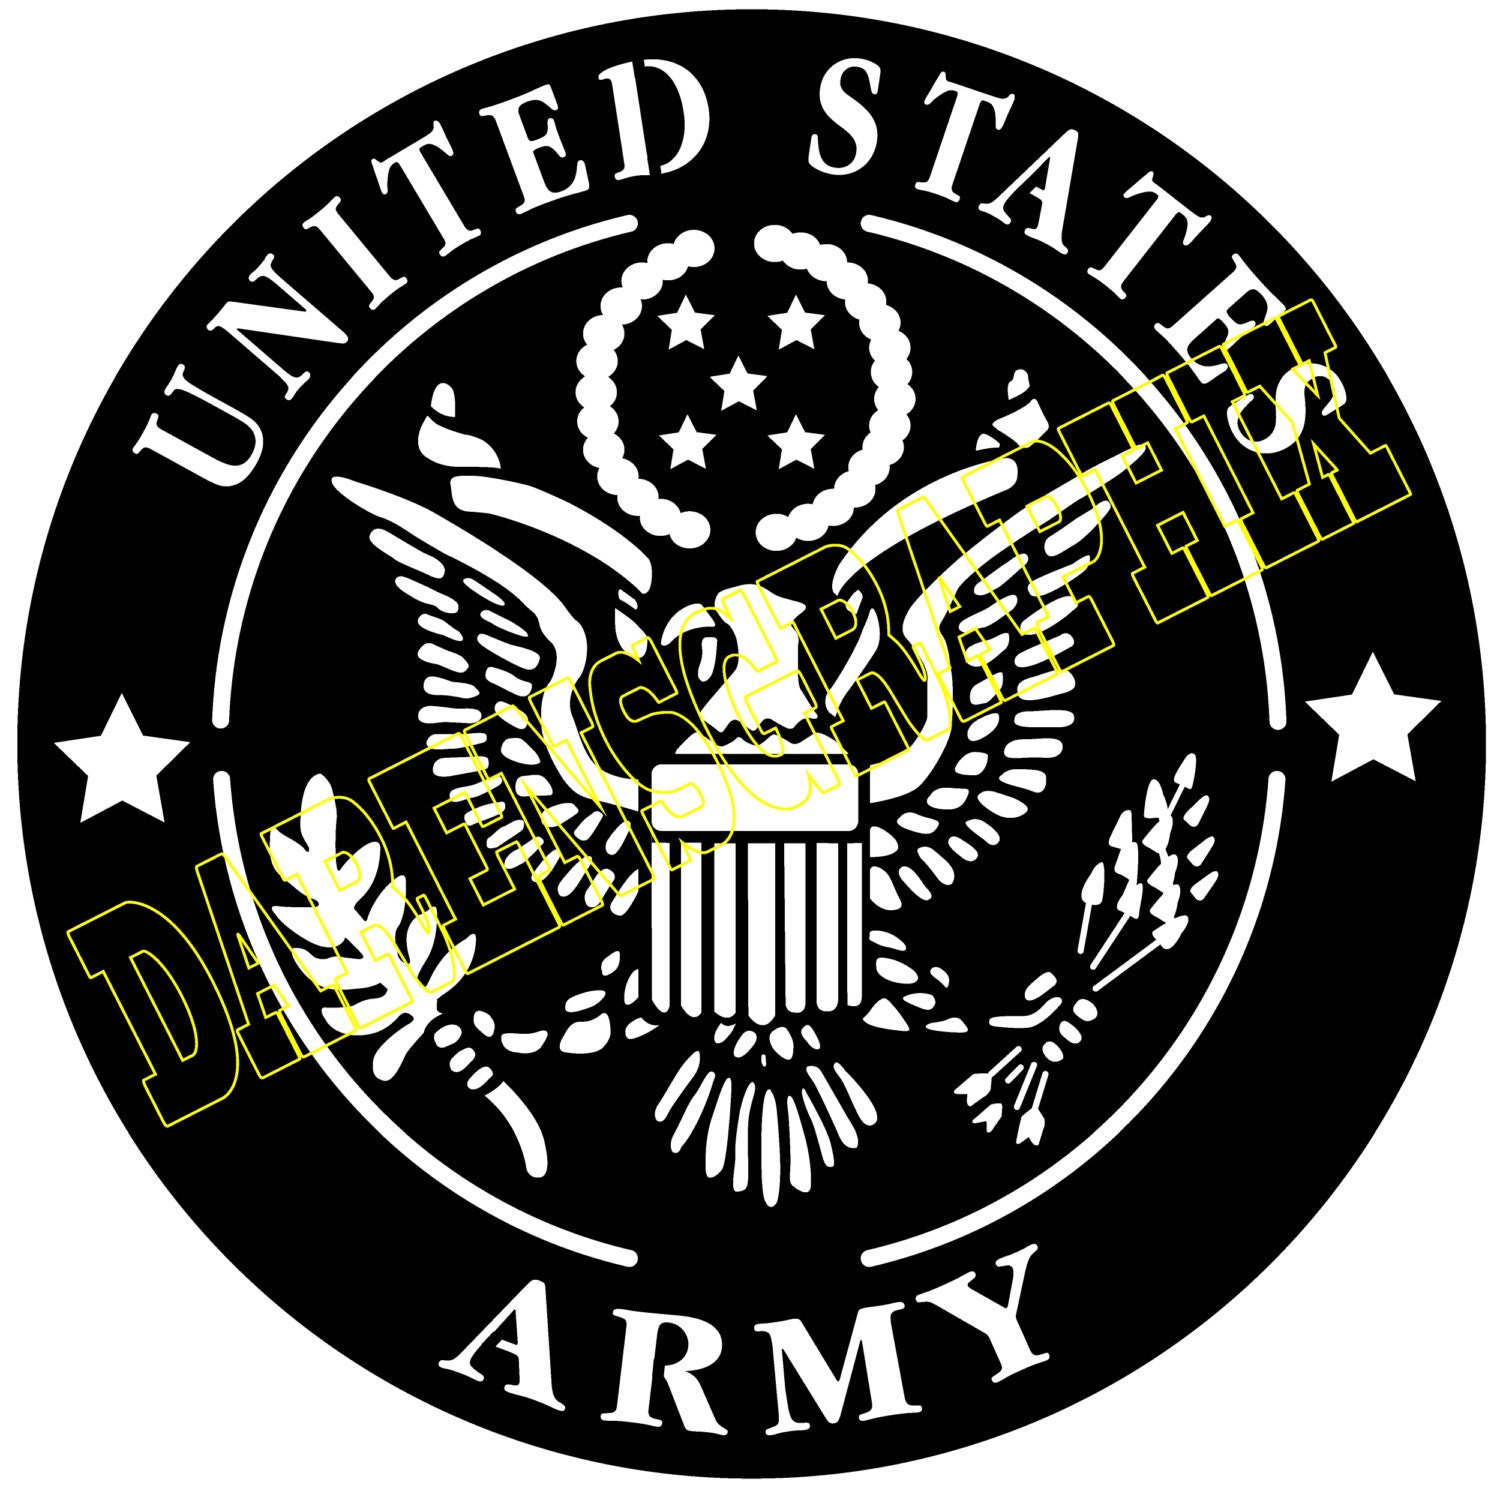 Dxf File Of The Us Army Emblem For Use With A Cnc Machine